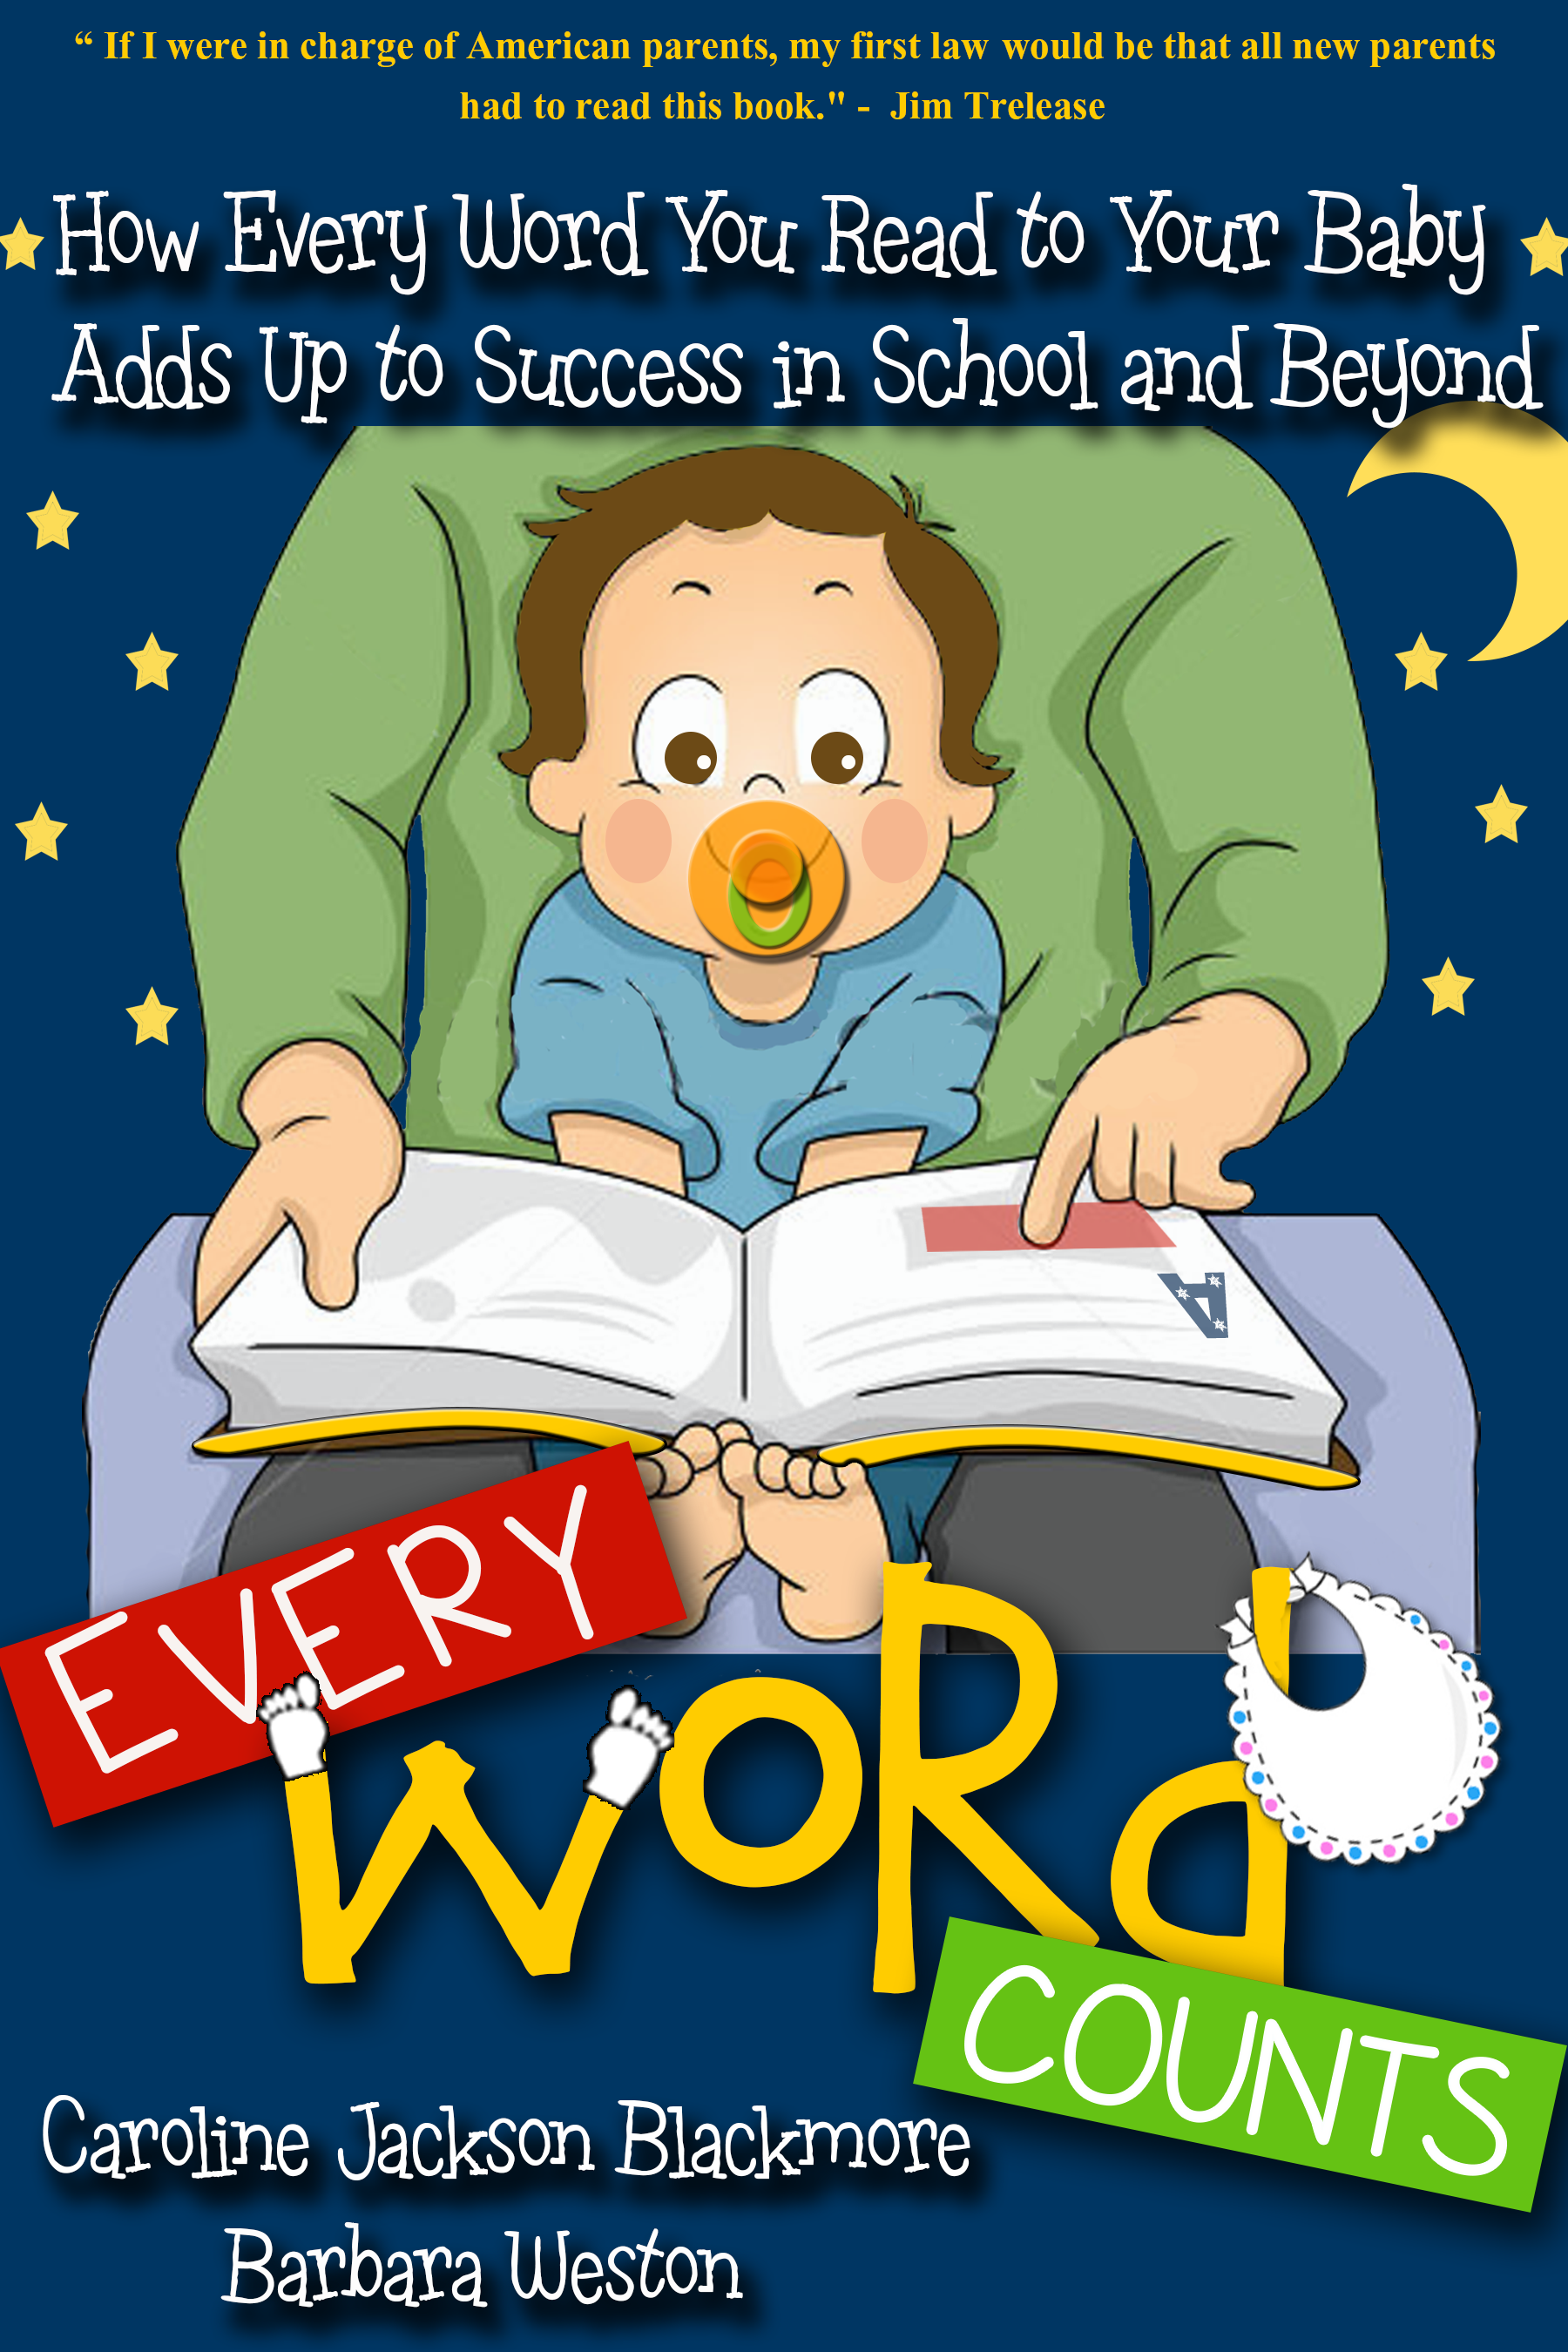 EVERY WORD COUNTS, How Every Word You Read to Your Baby Adds Up to Success in School and Beyond